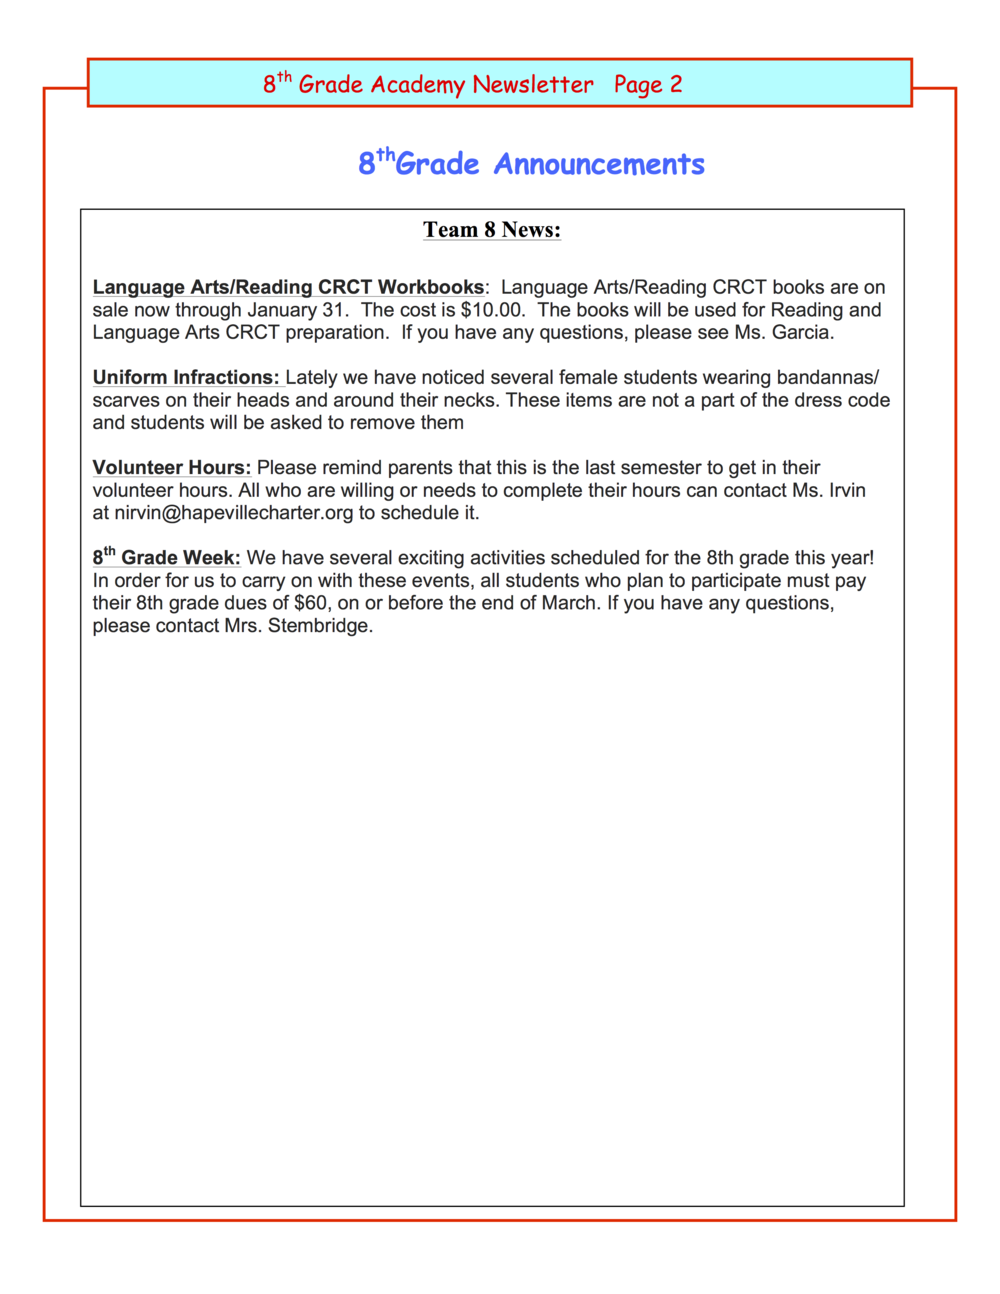 8th grade newsletter January 27B.png